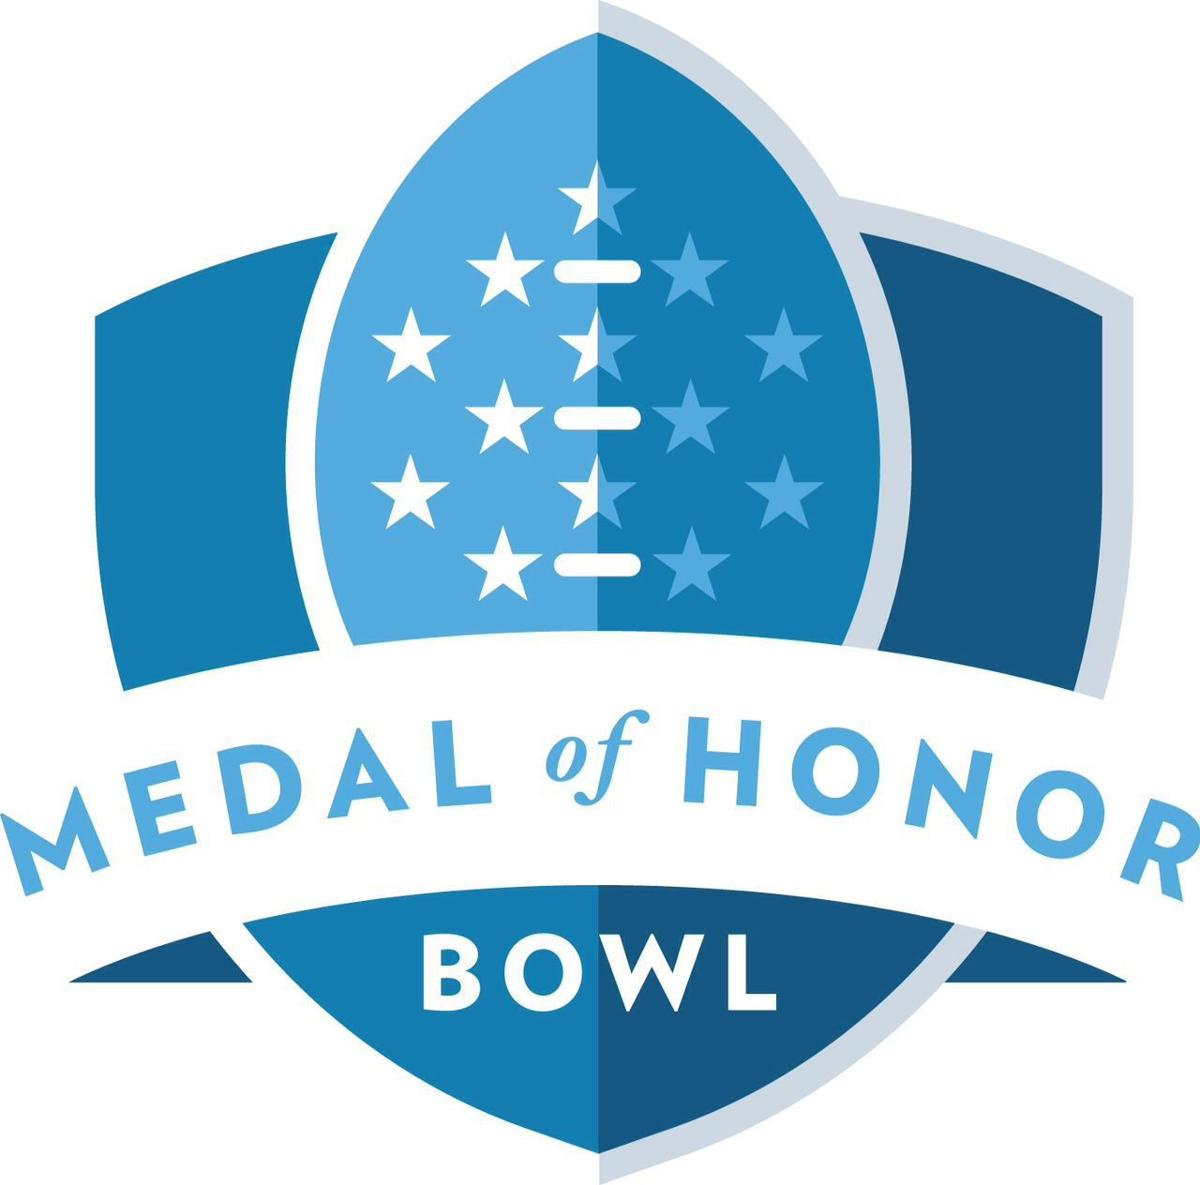 medal of honor bowl drop all star format sports medal of honor bowl drop all star format